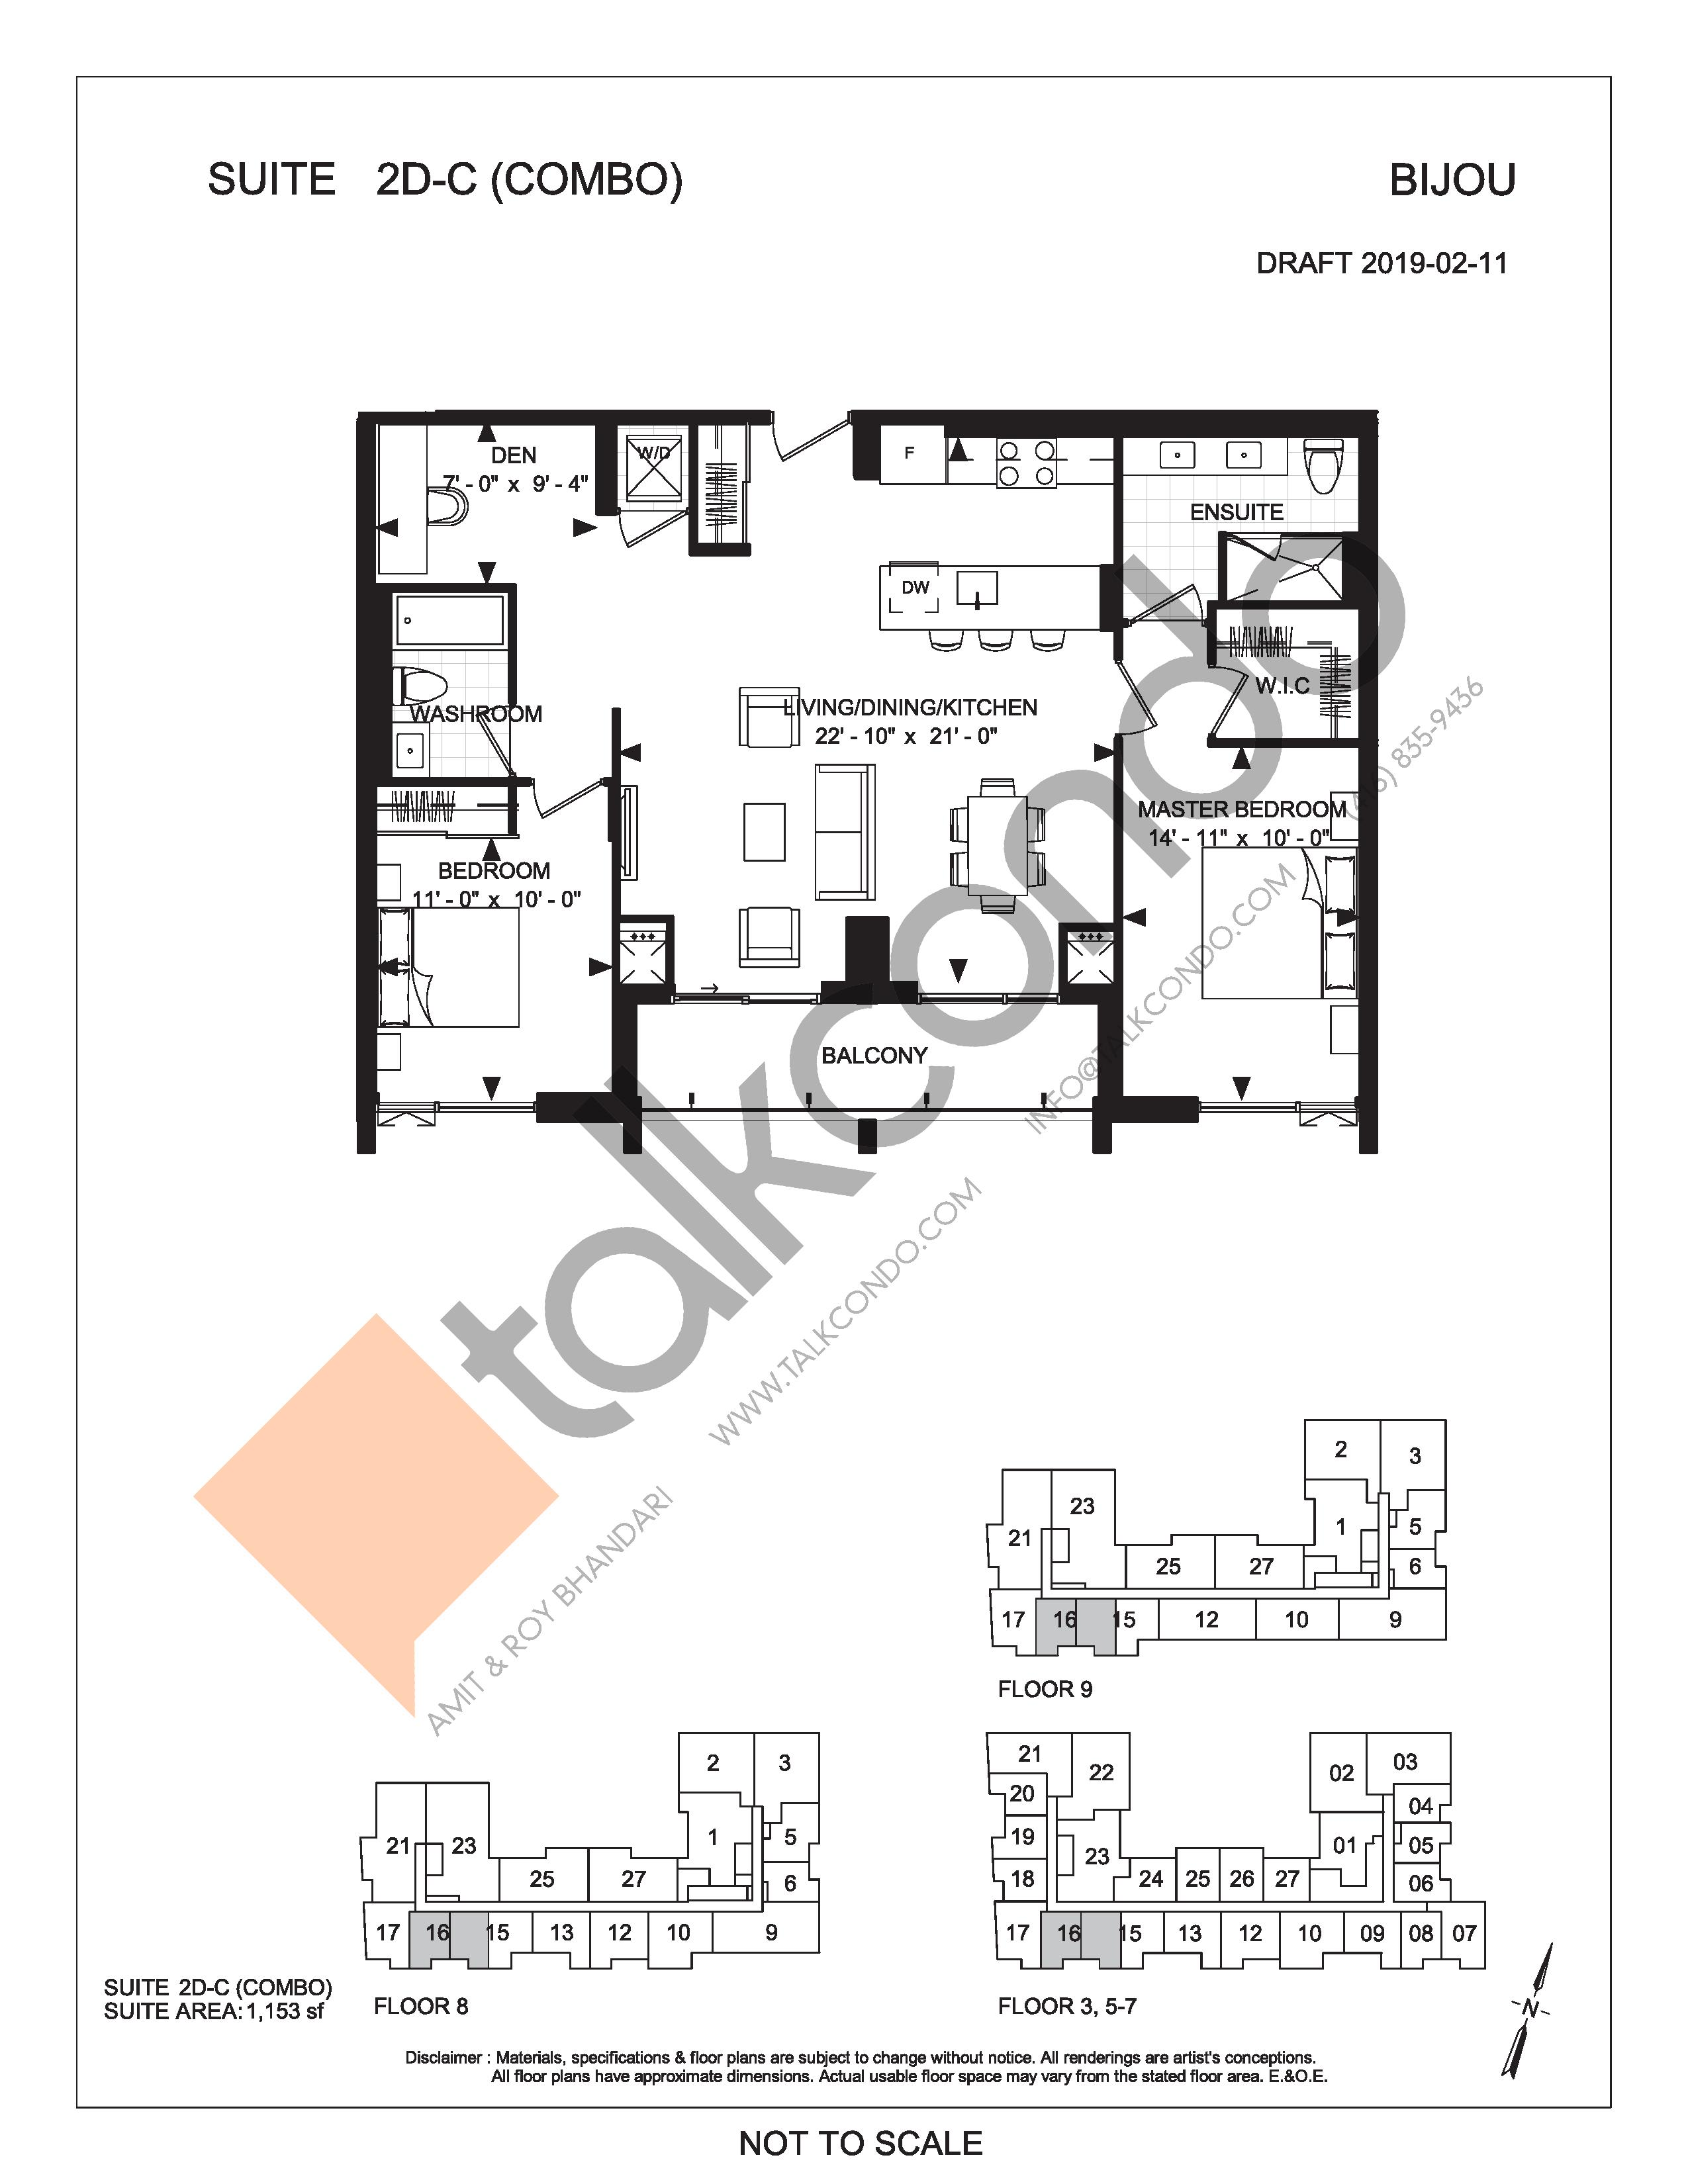 Suite 2D-C (Combo) Floor Plan at Bijou On Bloor Condos - 1153 sq.ft